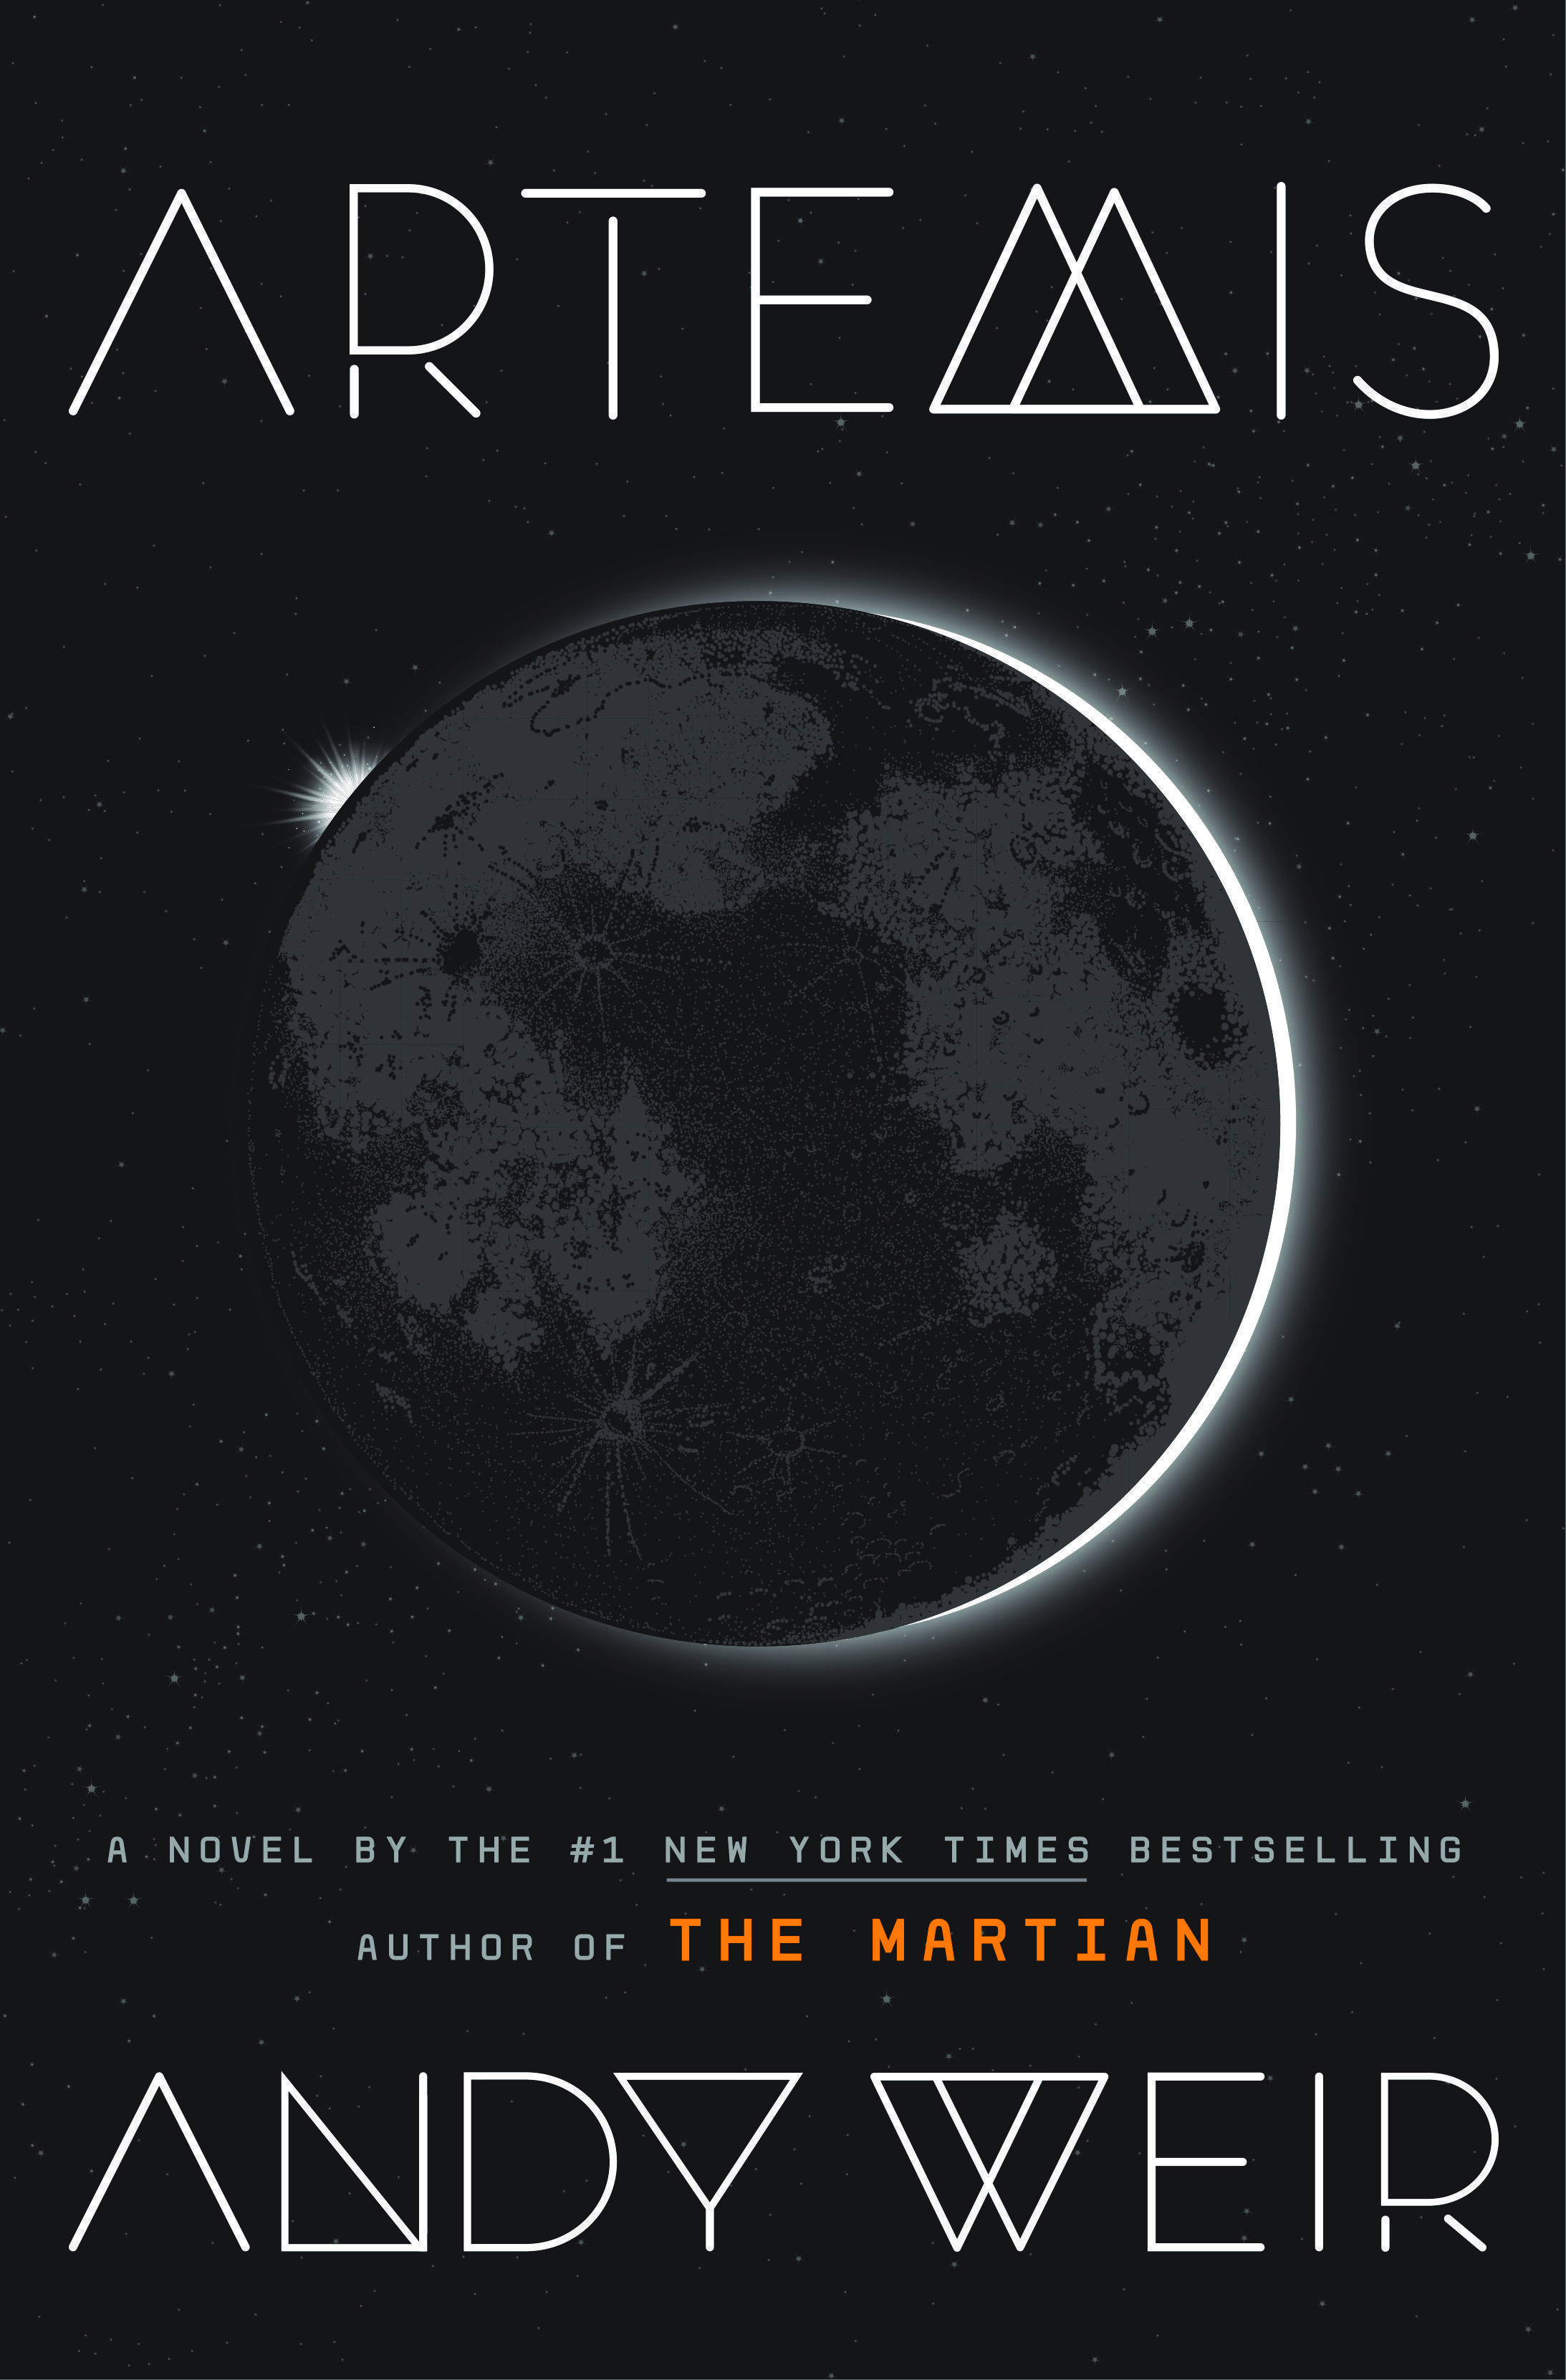 'Artemis' by Andy Weir Is Getting the Movie Treatment